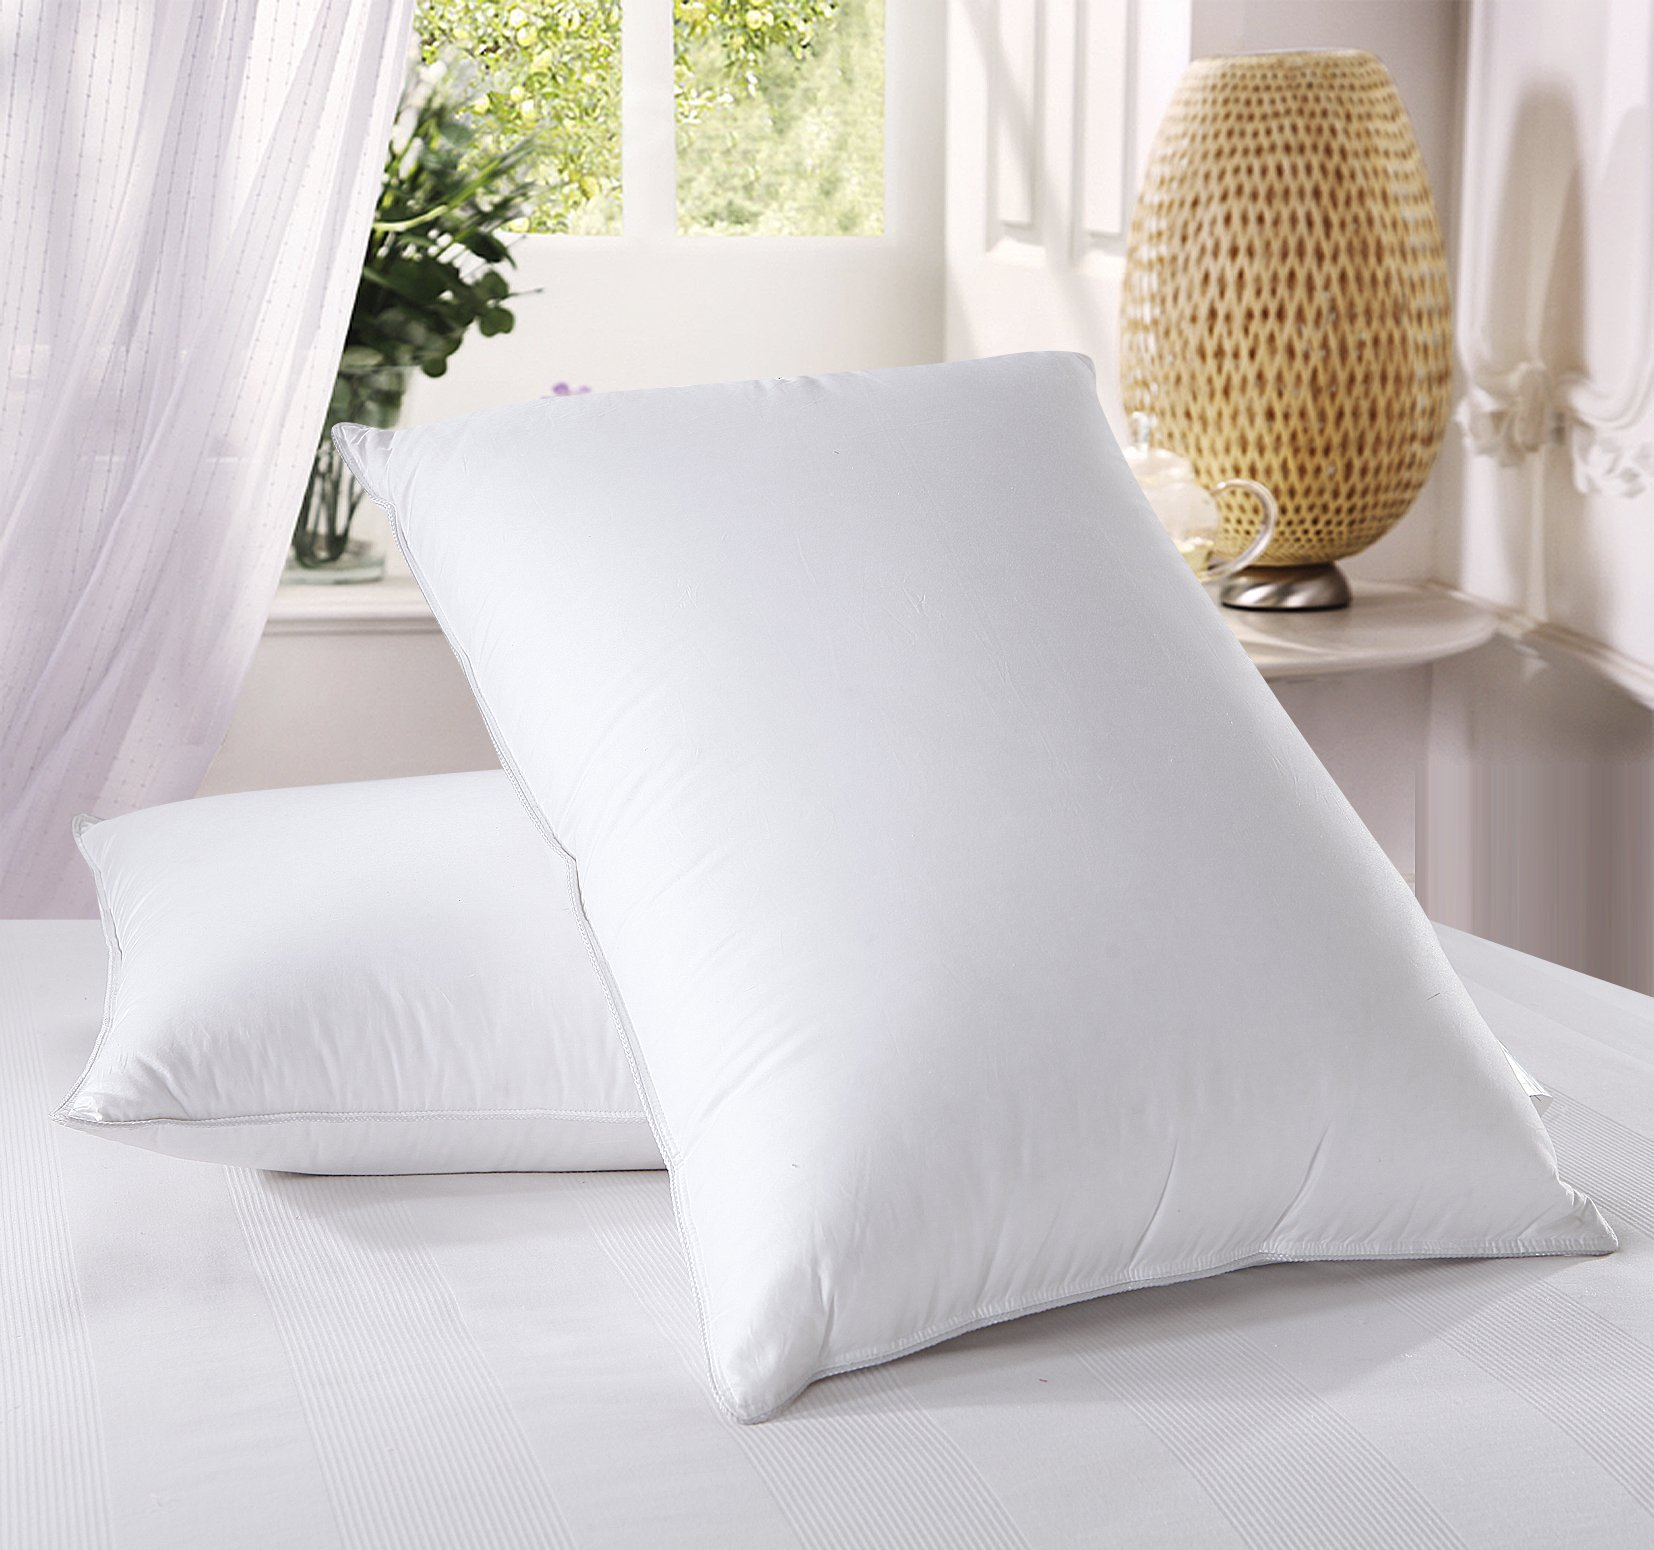 Soft Goose Down Pillow - 500 Thread Count Cotton Shell, Standard / Queen Size, Soft, 1 Single Pillow